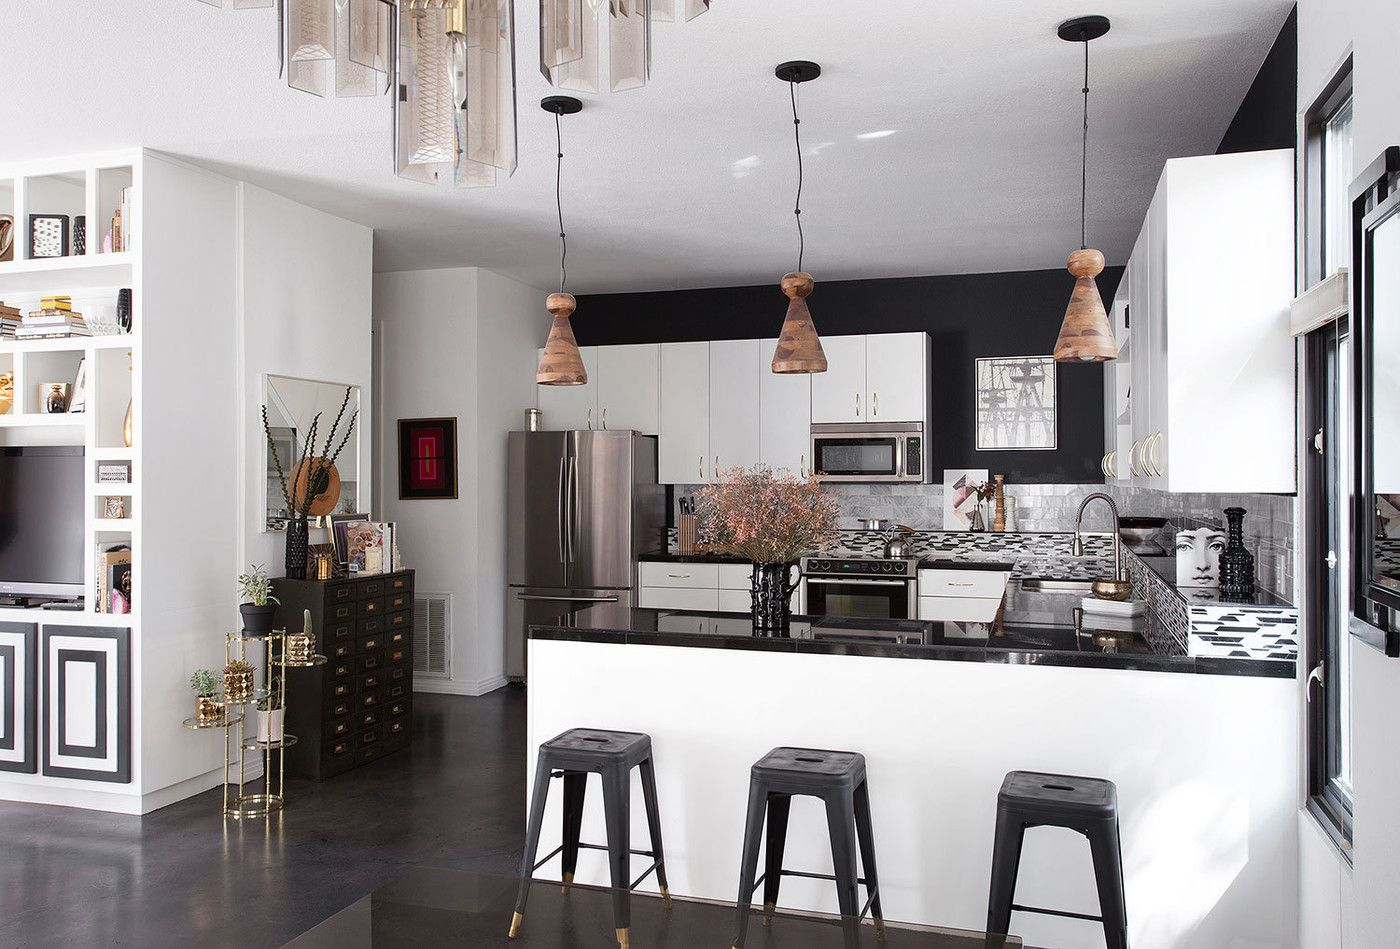 Contemporary Hollywood Regency Kitchen: A trio of pendant lamps hang over a black & white kitchen  .